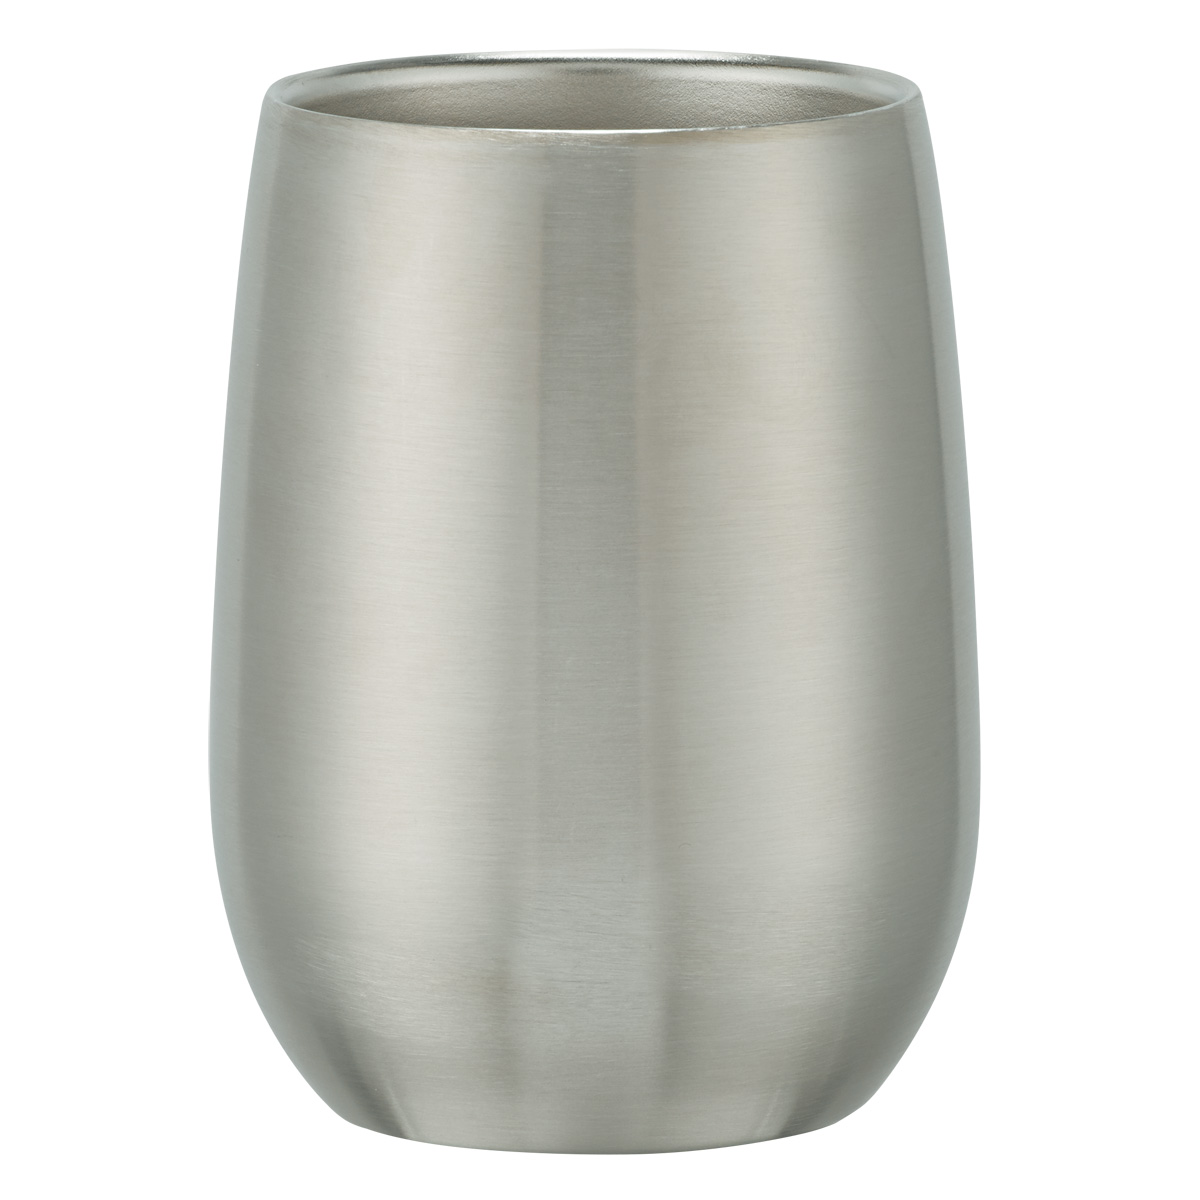 #CM 5728 - 9 Oz. Stainless Steel Stemless Wine Glass